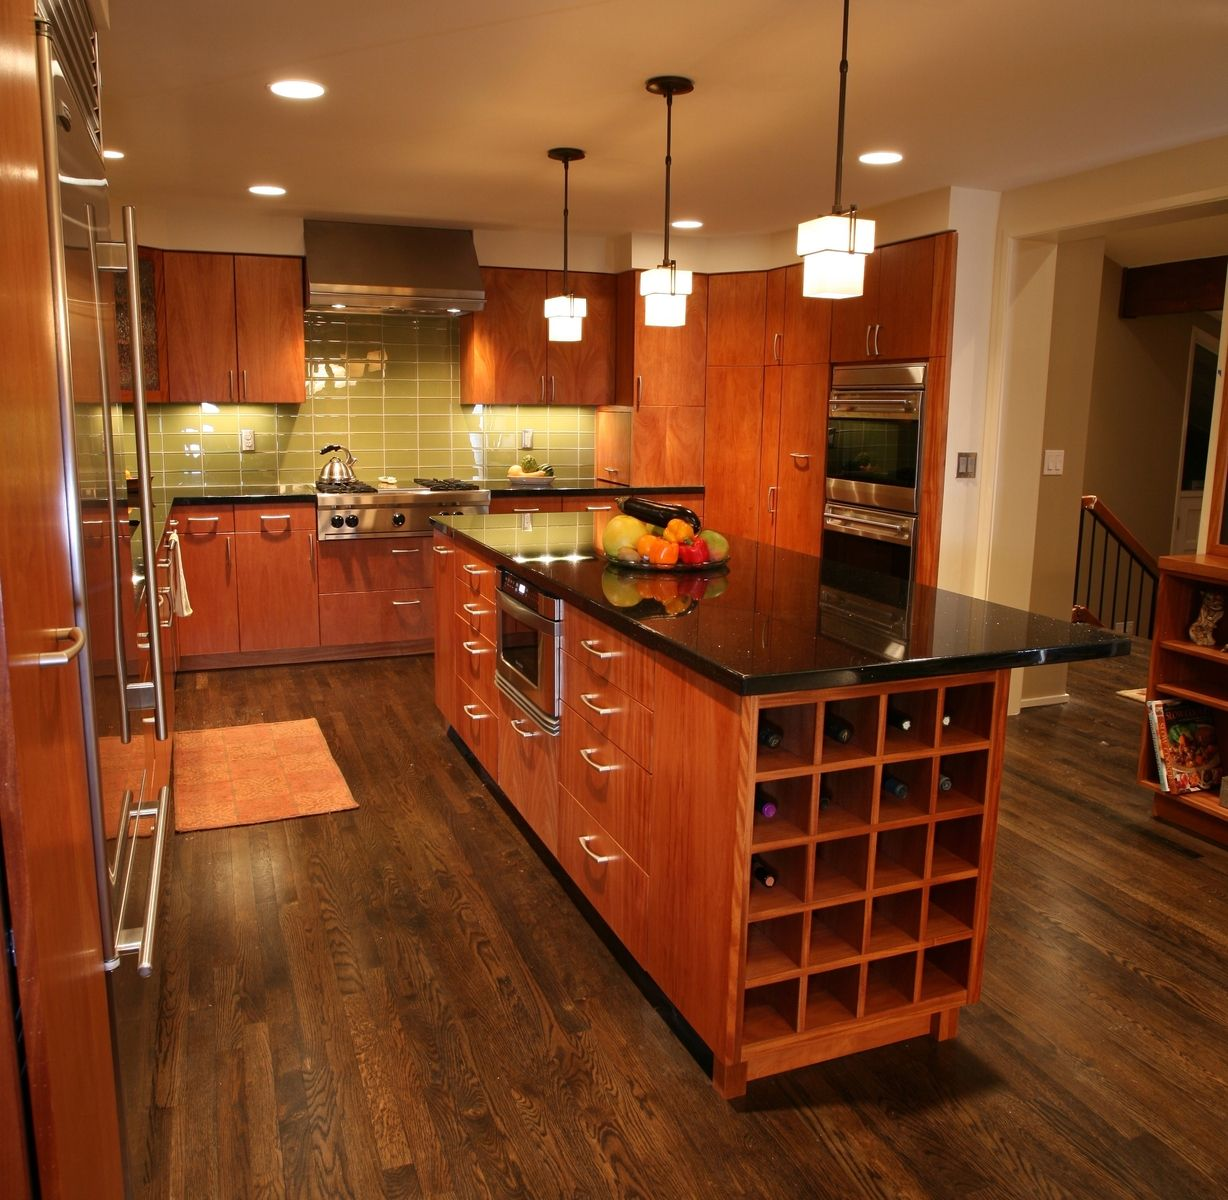 Dark Wooden Kitchen Floor: Contemporary Mahogany Kitchen And Island. So I Can See